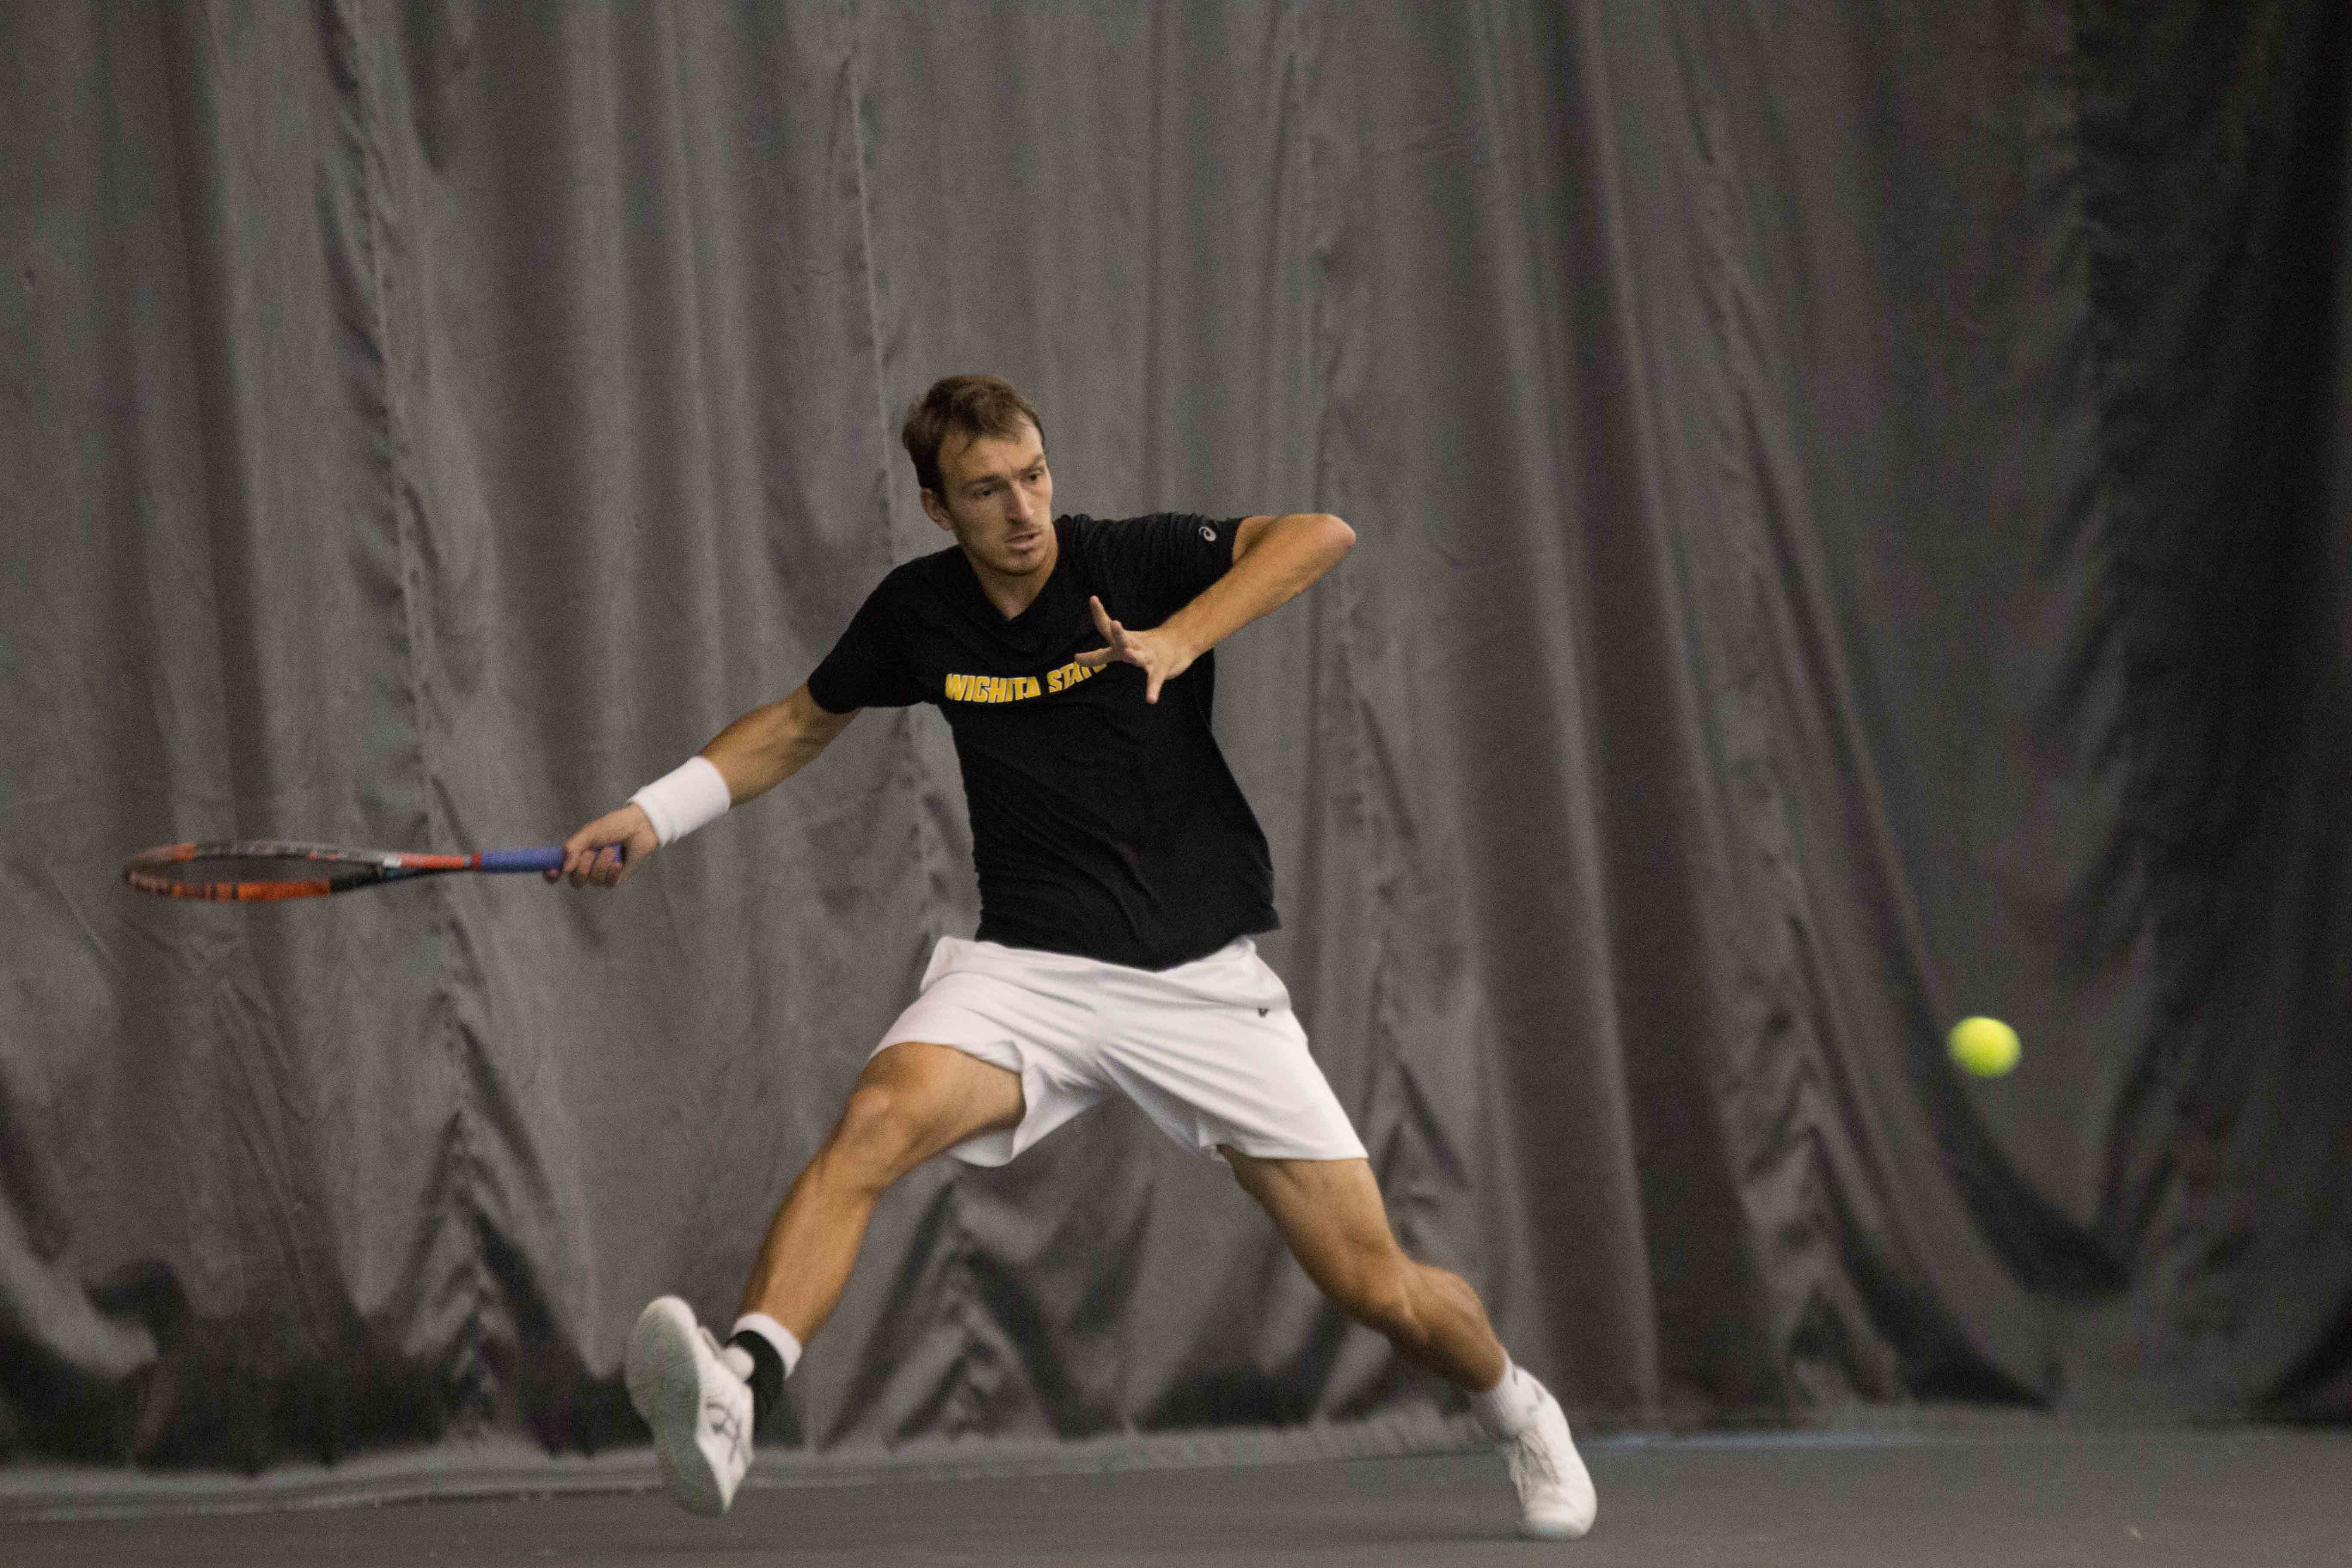 Junior Miroslav Herzan chases the ball to keep it from going out of bounds. Wichita State lost the match to Cornell.